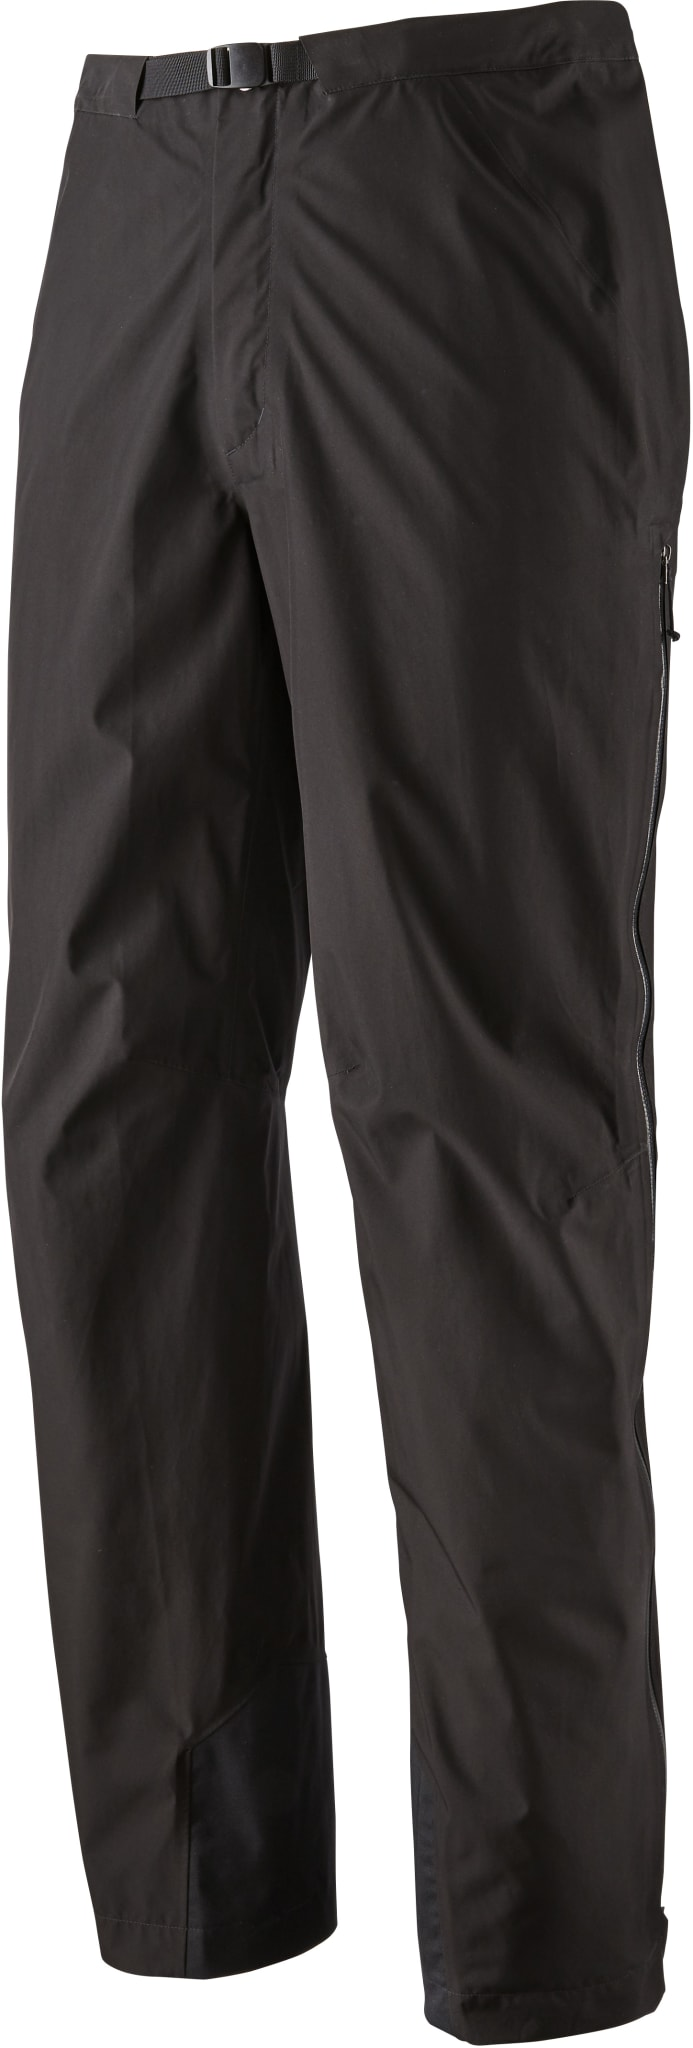 Calcite GTX Pants Ms